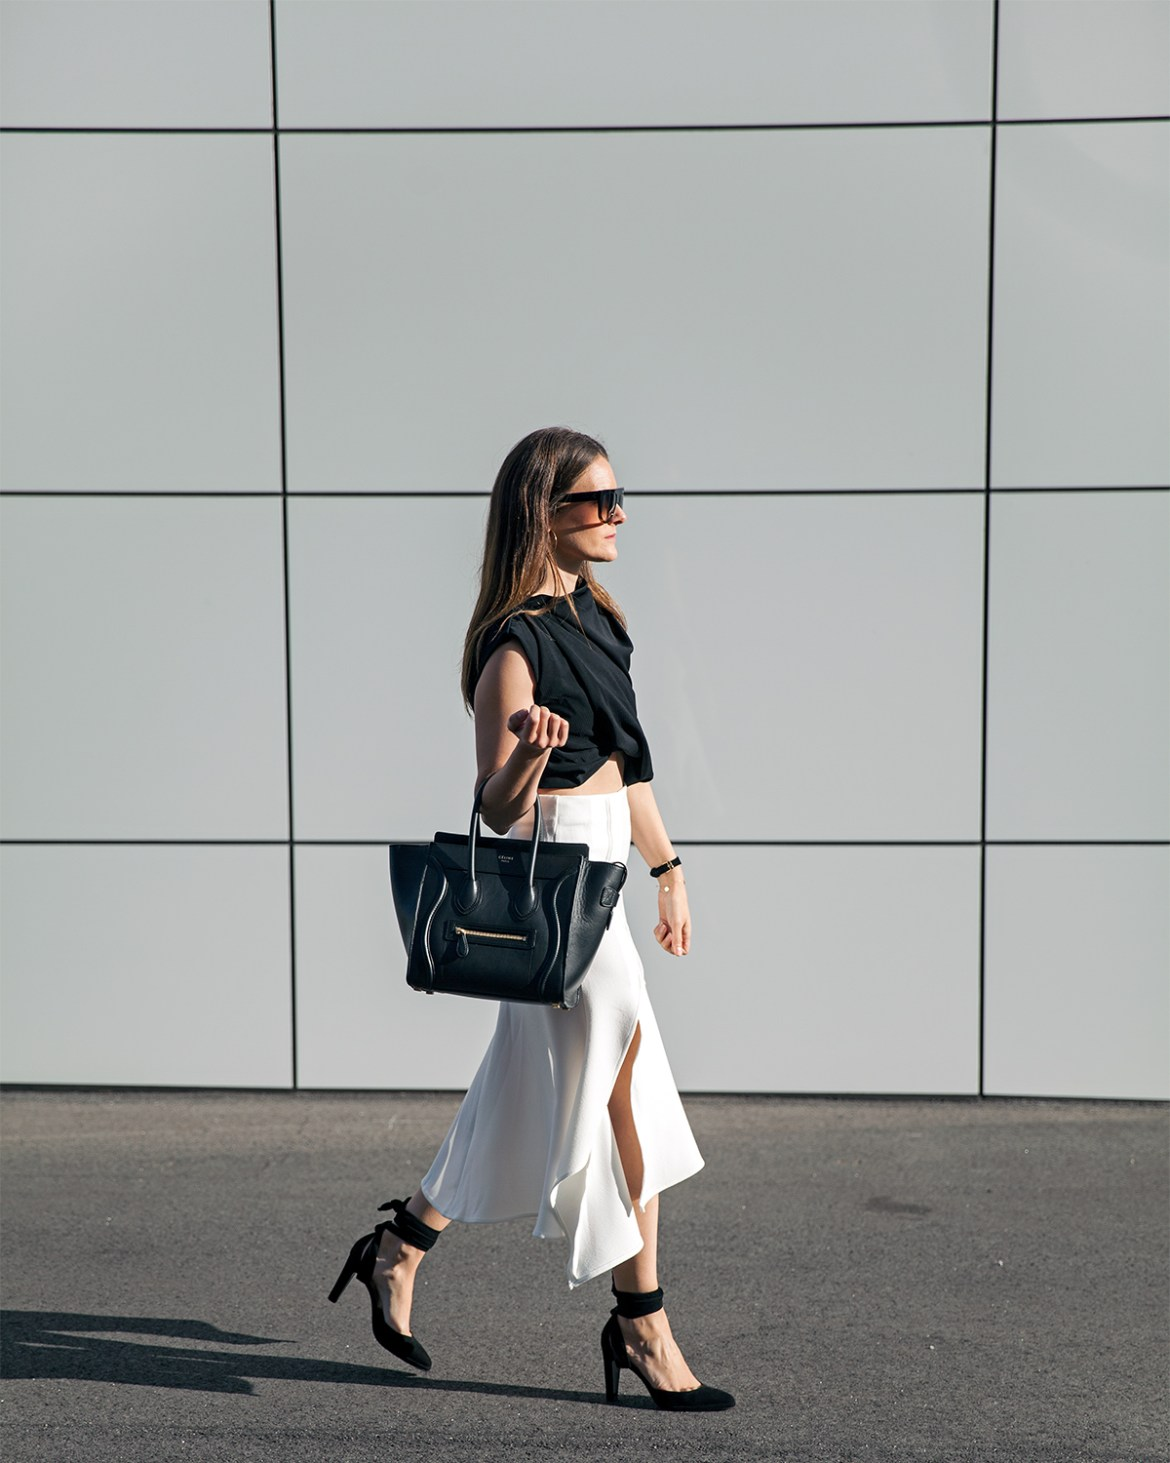 midi skirts, five reasons you need one, Hermes suede heels, Ellery Crop, Celine sunglasses, Celine tote, Hello Parry midi skirt worn by Inspiring Wit fashion blogger Jenelle Witty